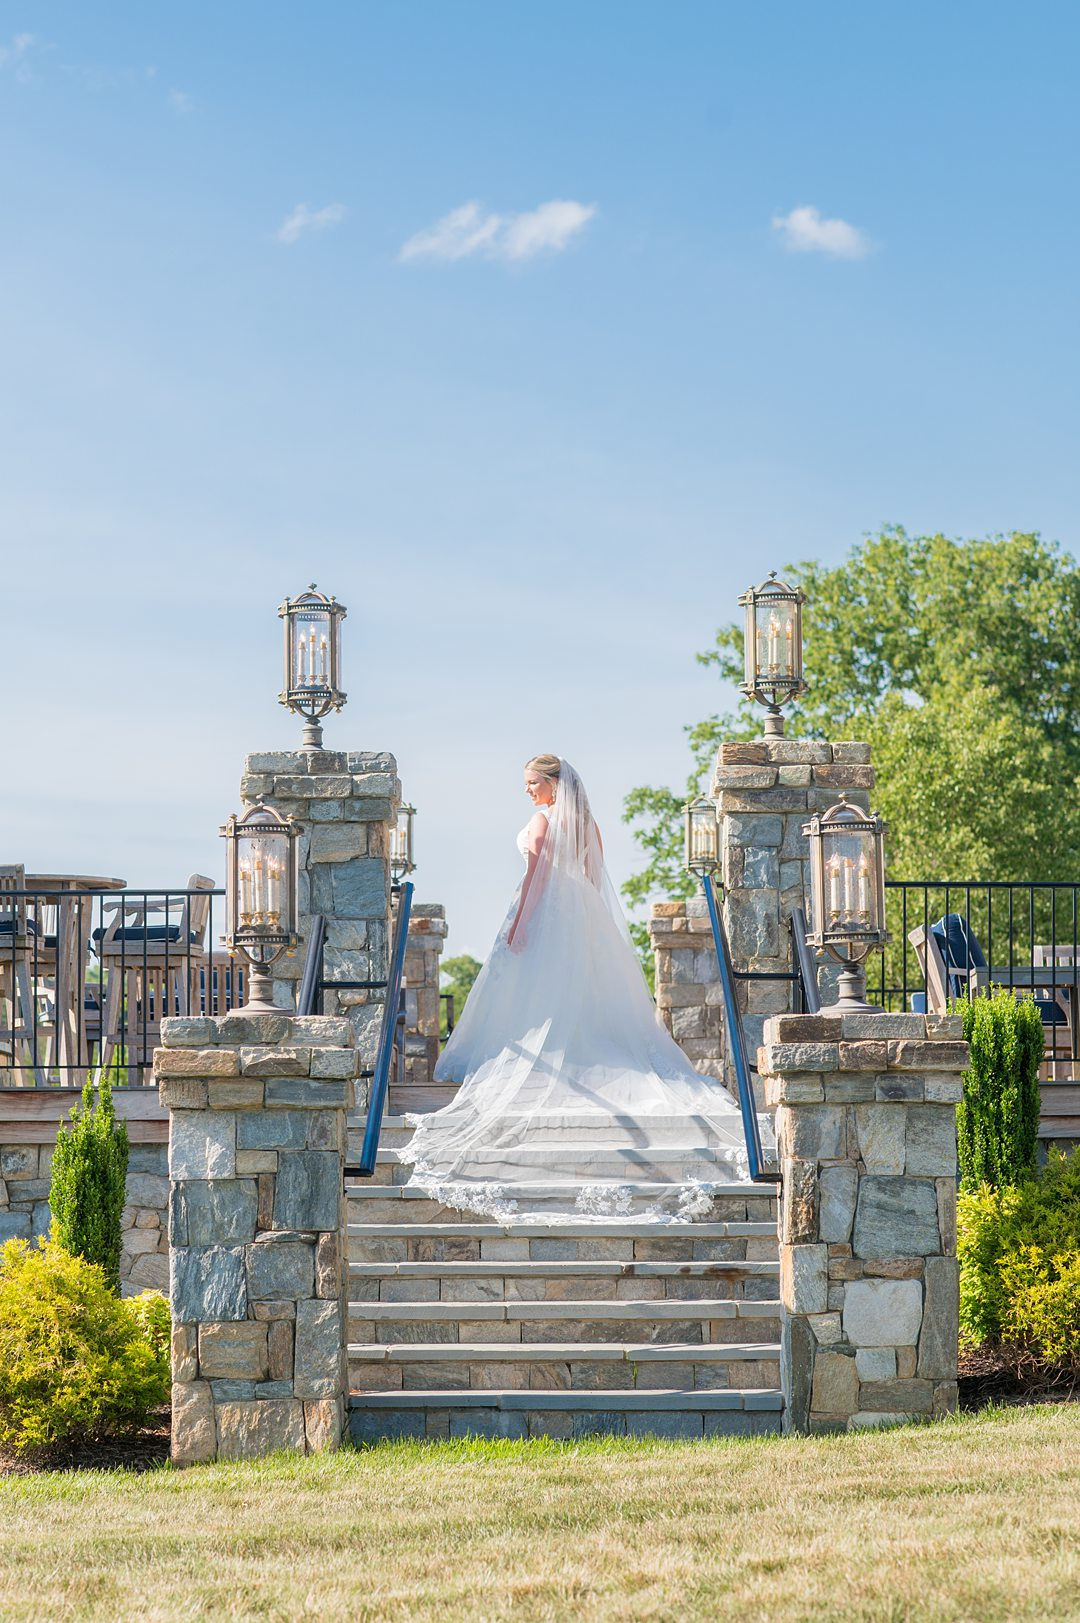 The bride wore a long veil for her wedding at The Lodge at Mount Ida Farm. Photographed by Mikkel Paige Photography.